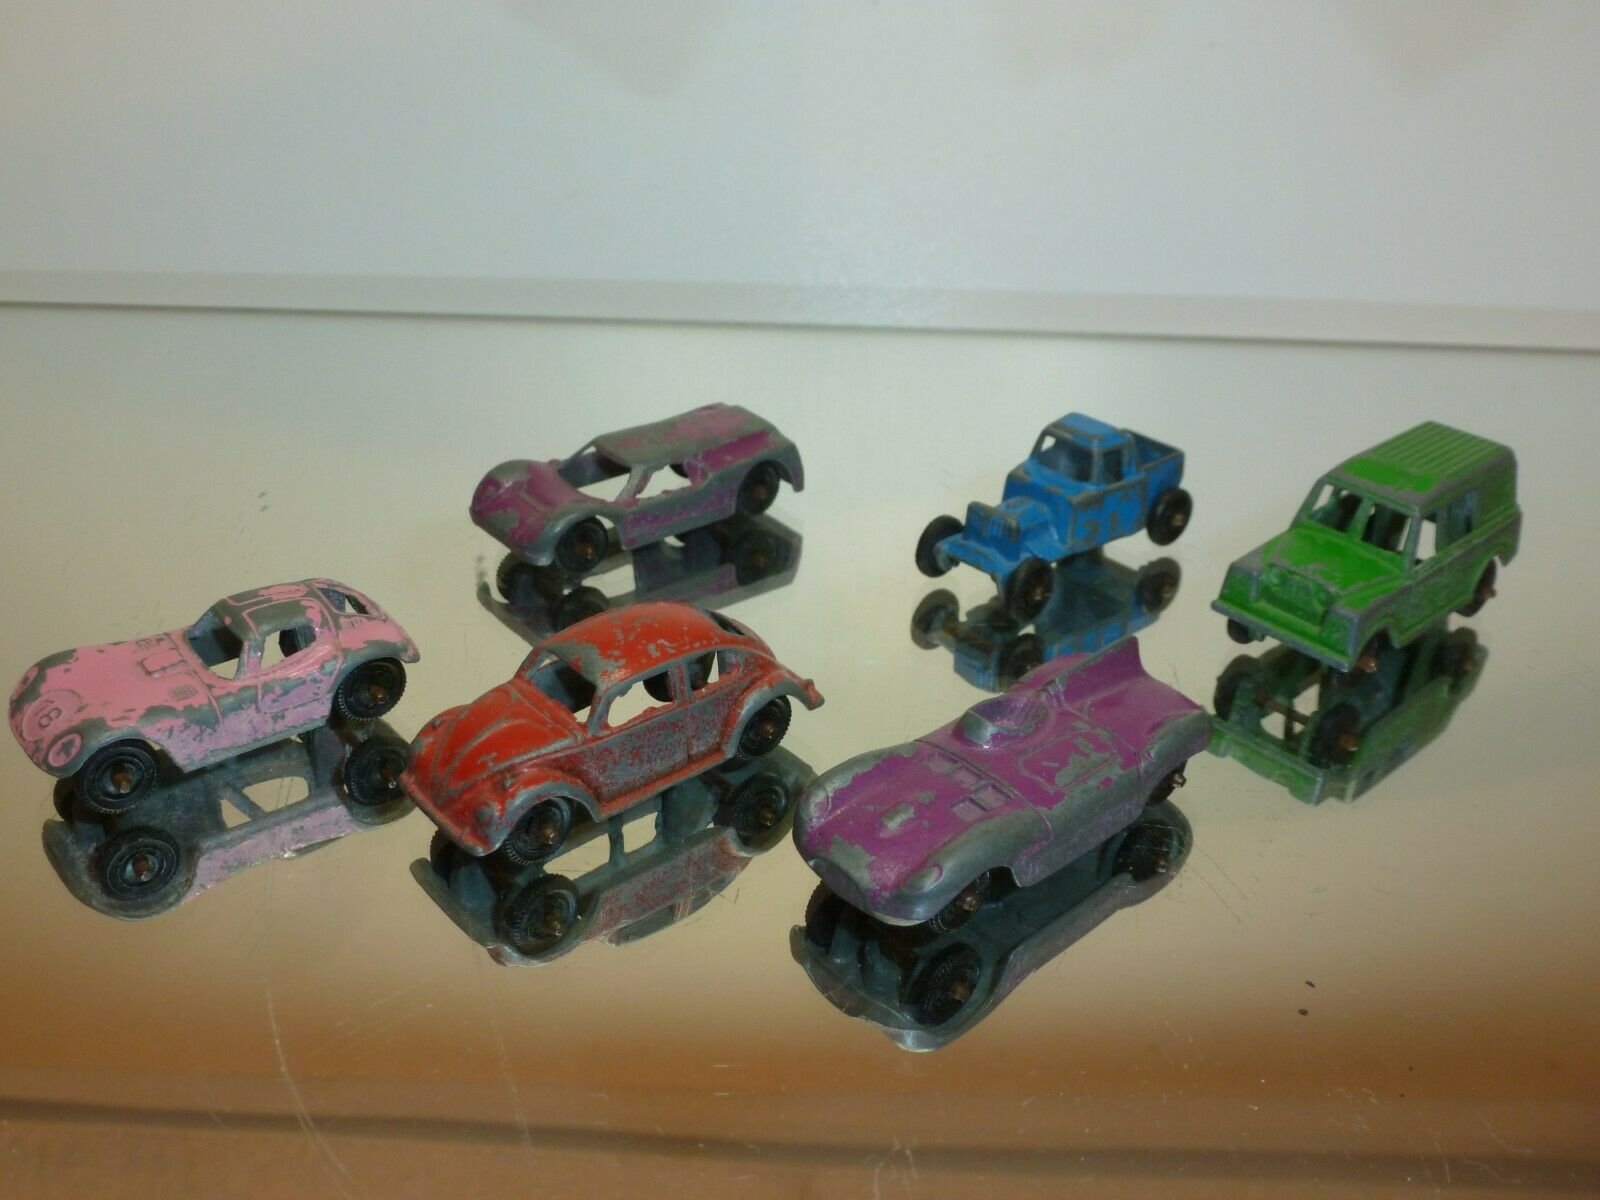 TOOTSIETOY 6x CARS VW JAGUAR LANDROVER FORD HOTROD RACECAR - GOOD CONDITION